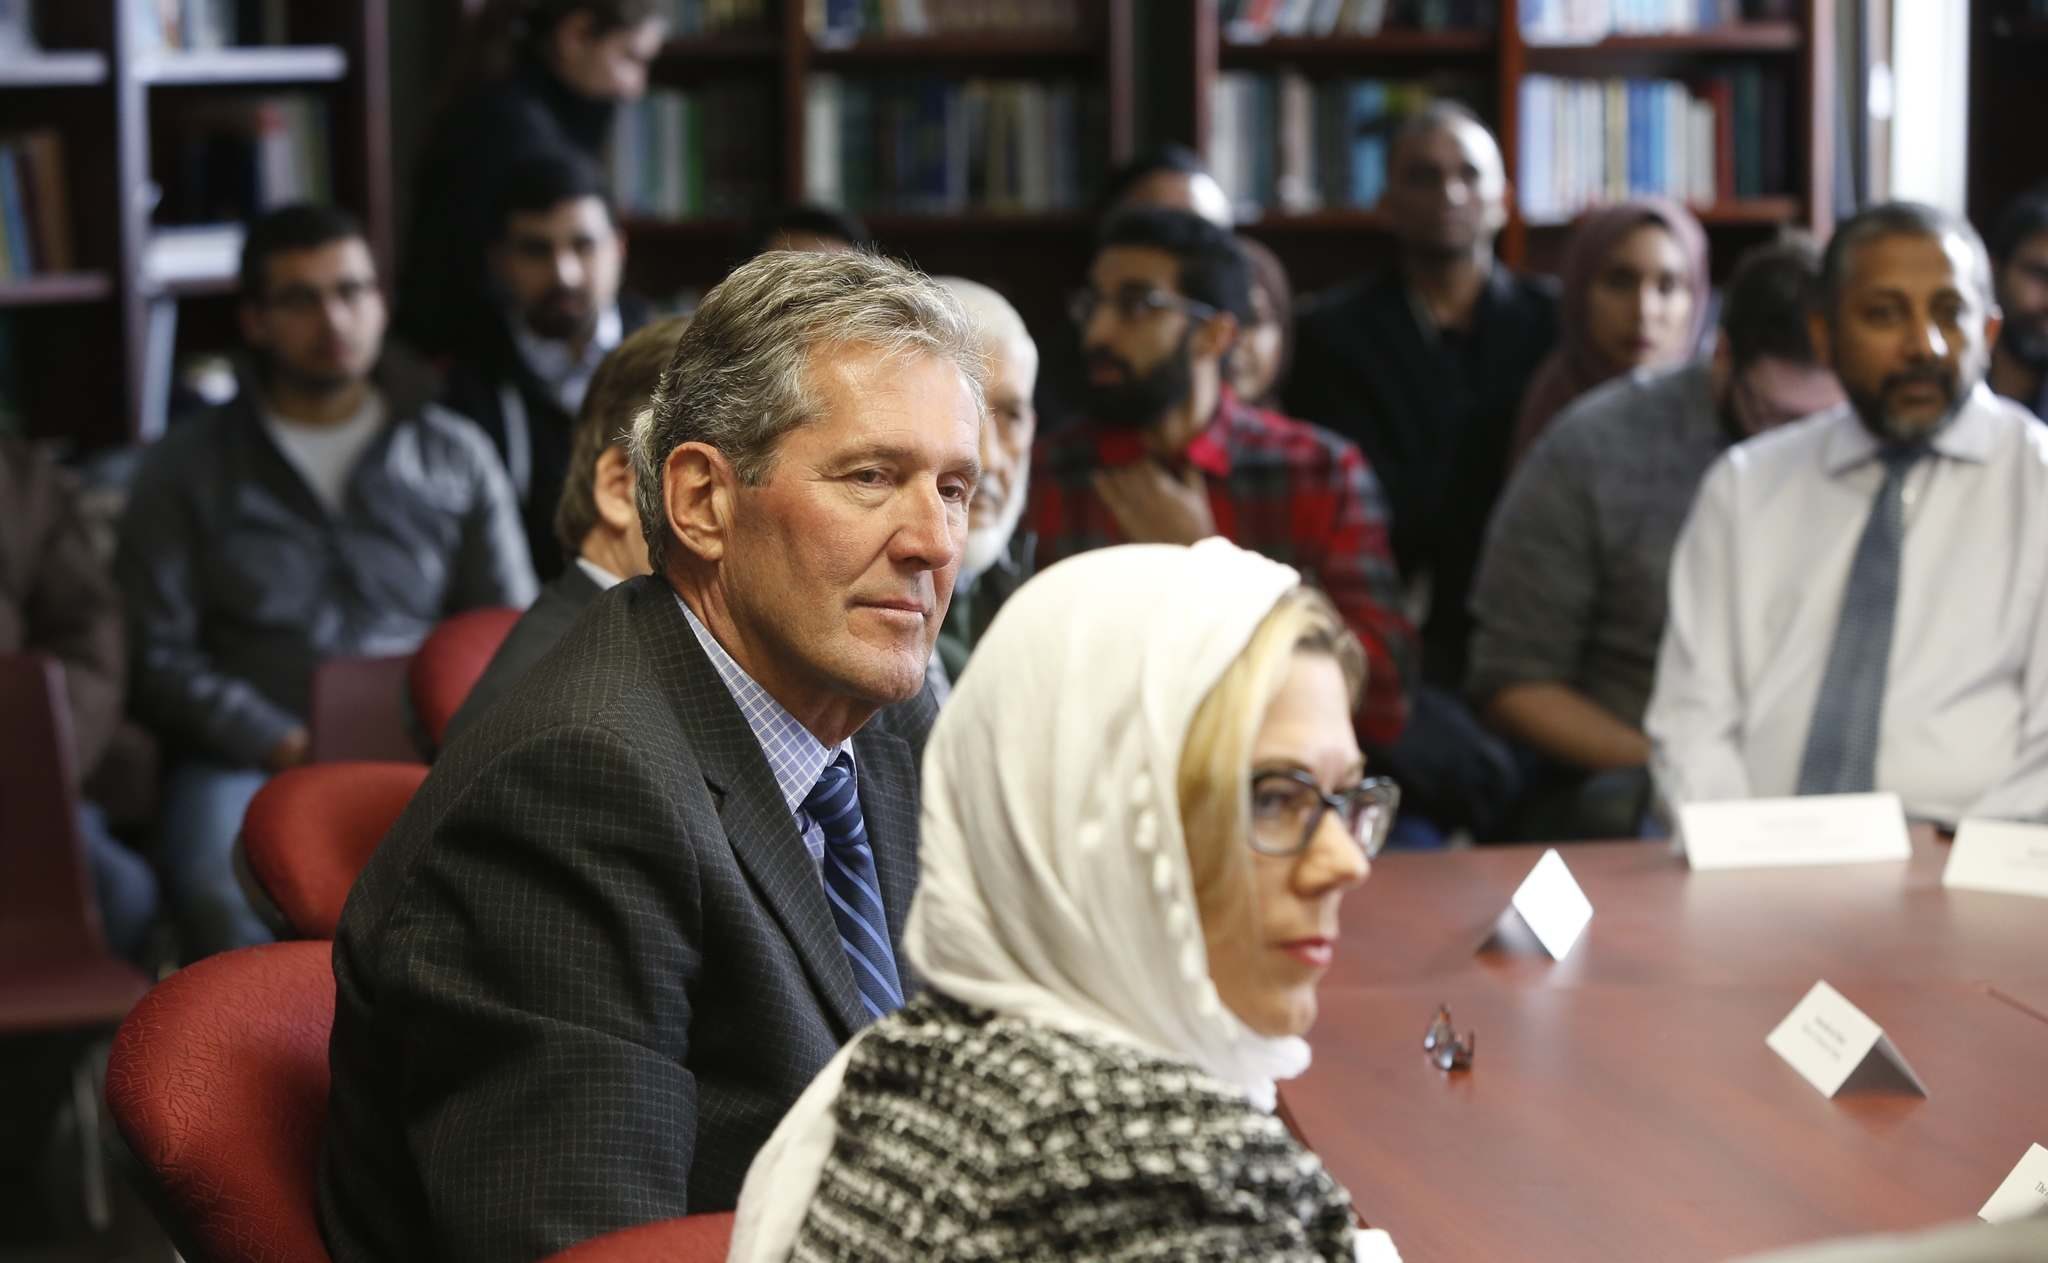 WAYNE GLOWACKI / WINNIPEG FREE PRESS</p><p>Premier Brian Pallister and Culture Minister Rochelle Squires at right in a meeting in the Winnipeg Grand Mosque Tuesday.</p>